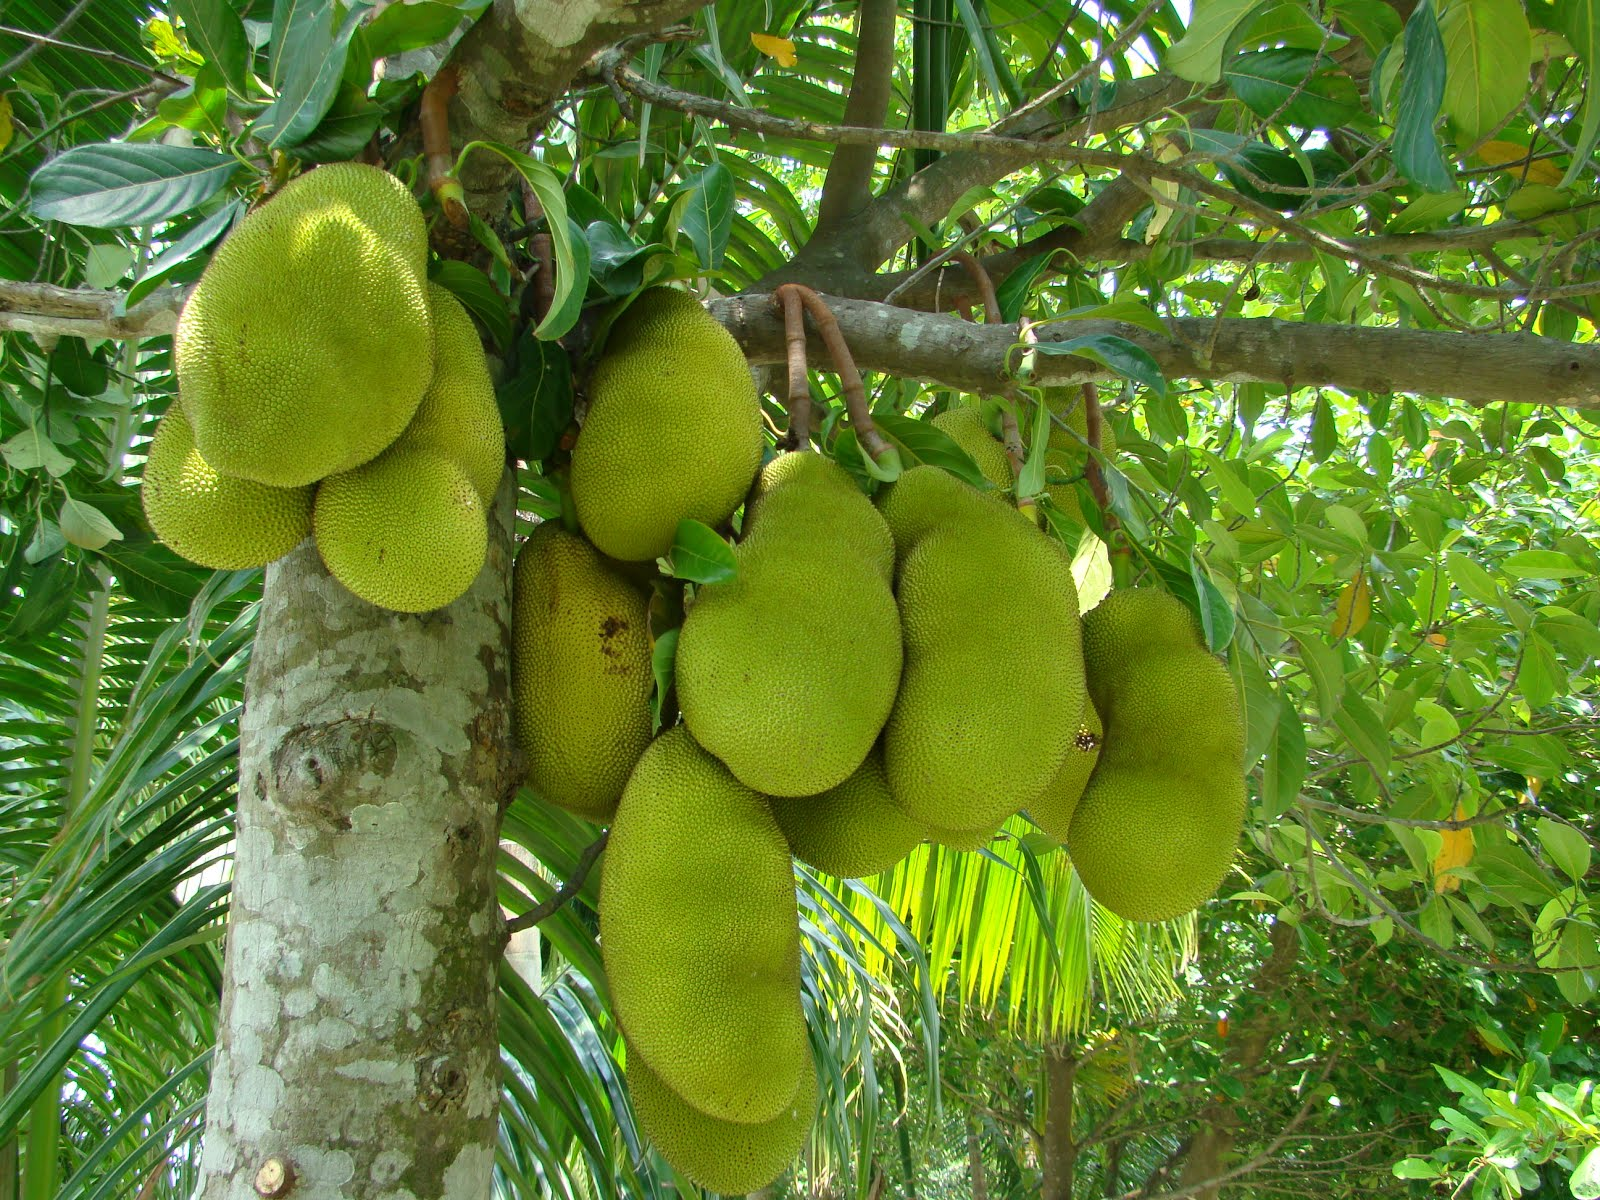 as Artocarpus integrifolia